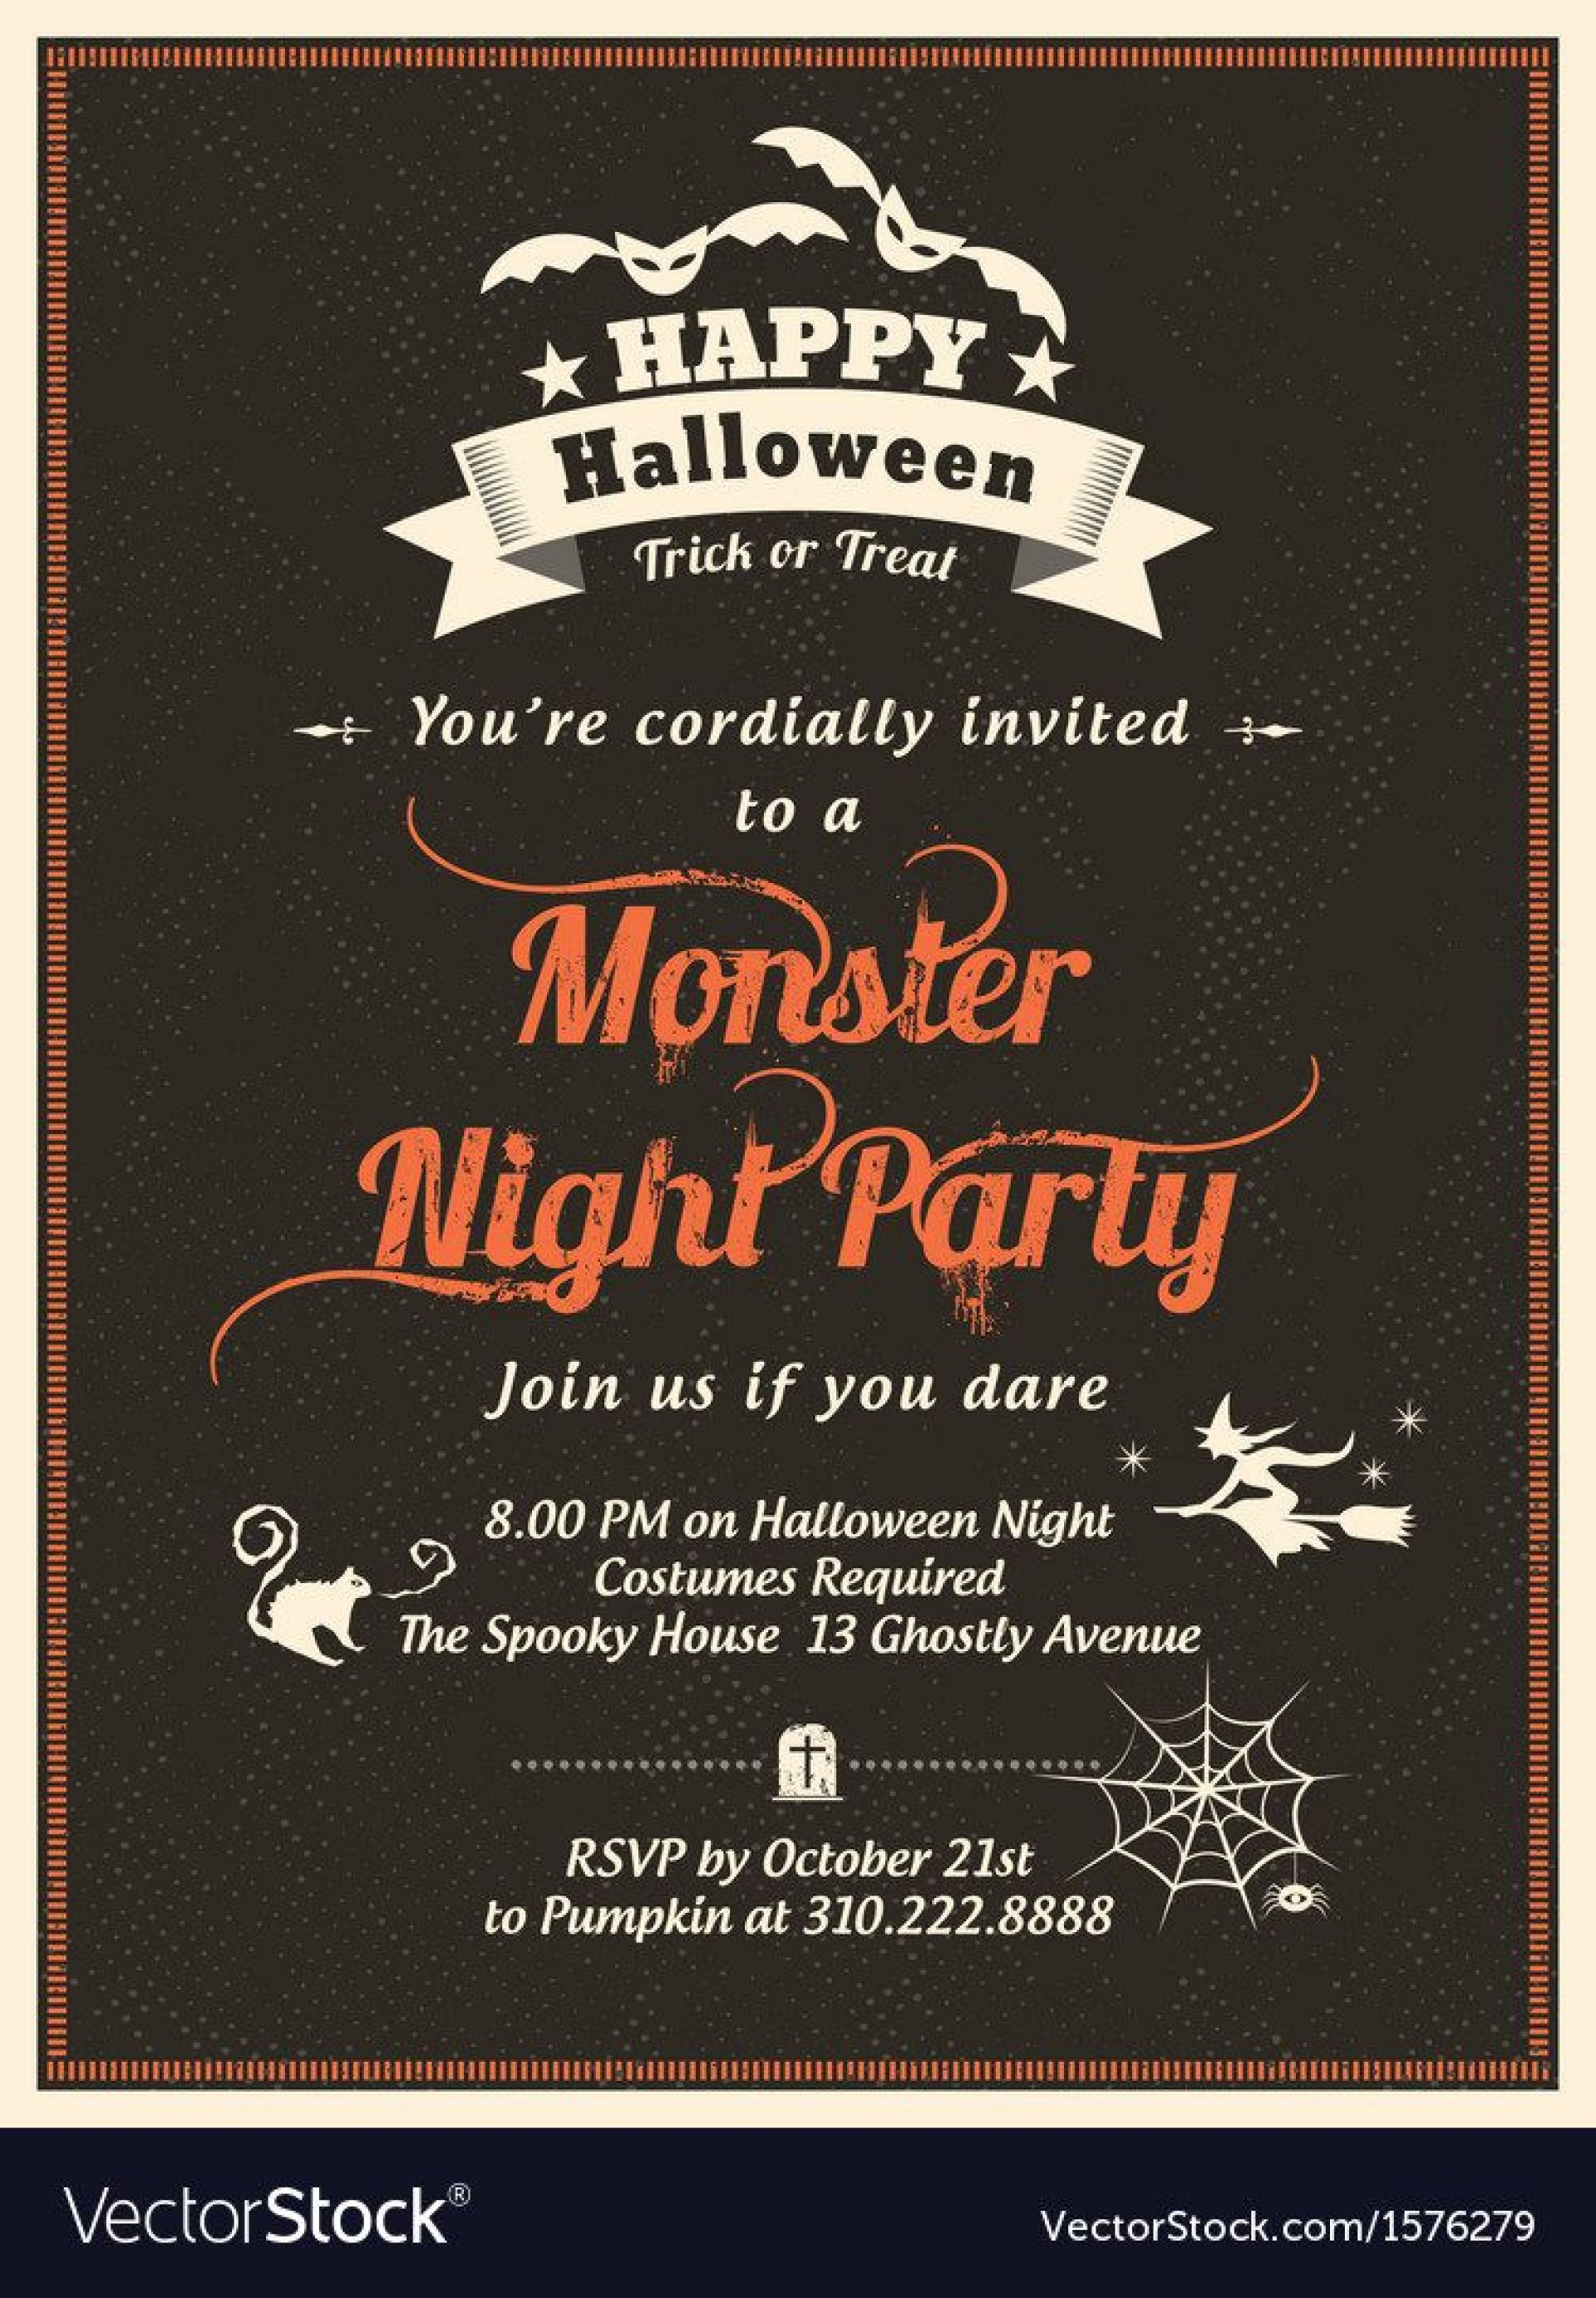 009 Beautiful Halloween Party Invite Template Highest Quality  Spooky Invitation Free Printable Birthday Download1920